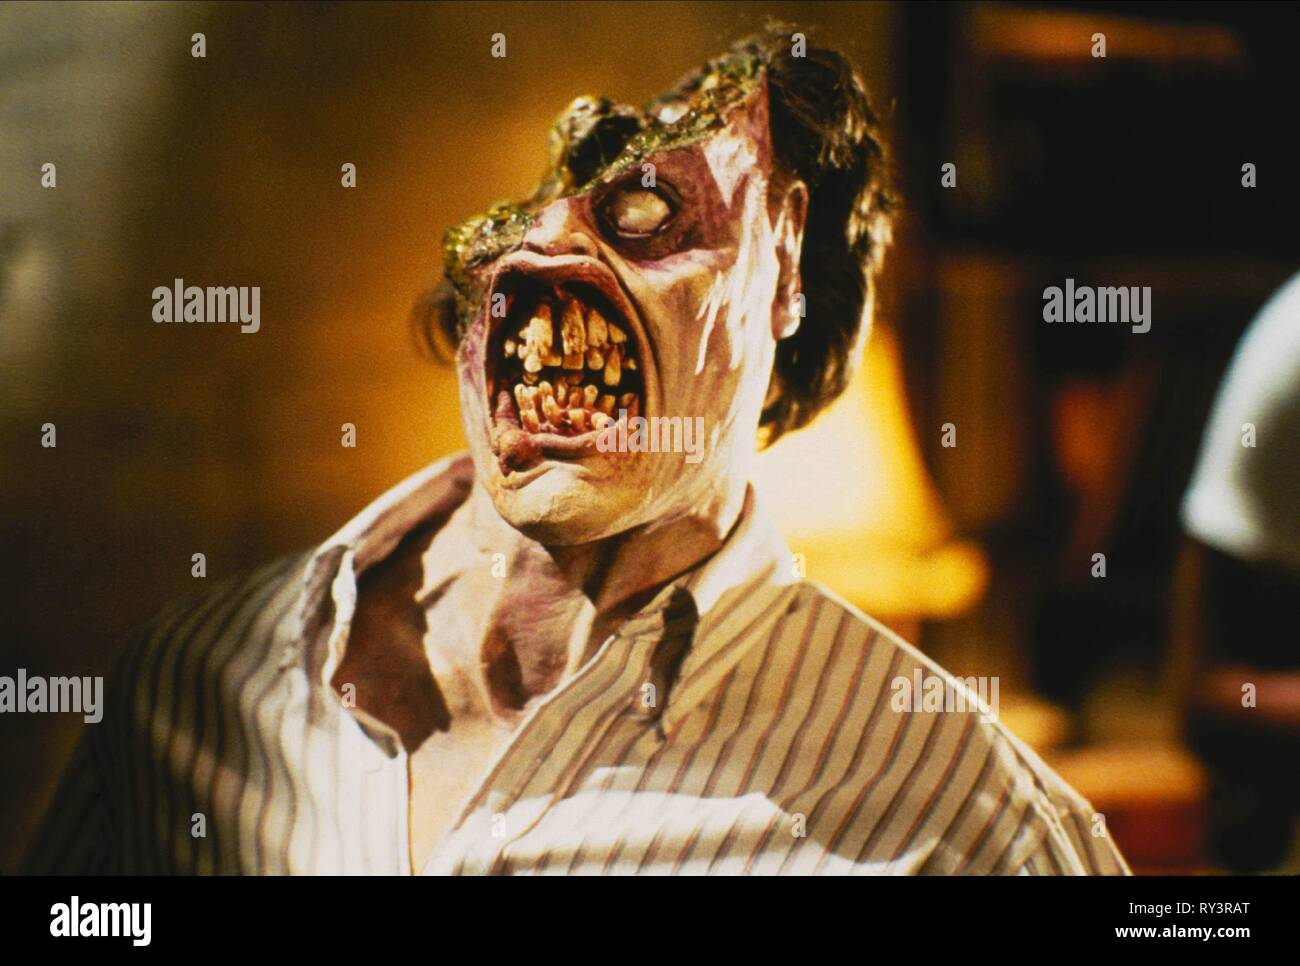 Evil Dead High Resolution Stock Photography And Images Alamy